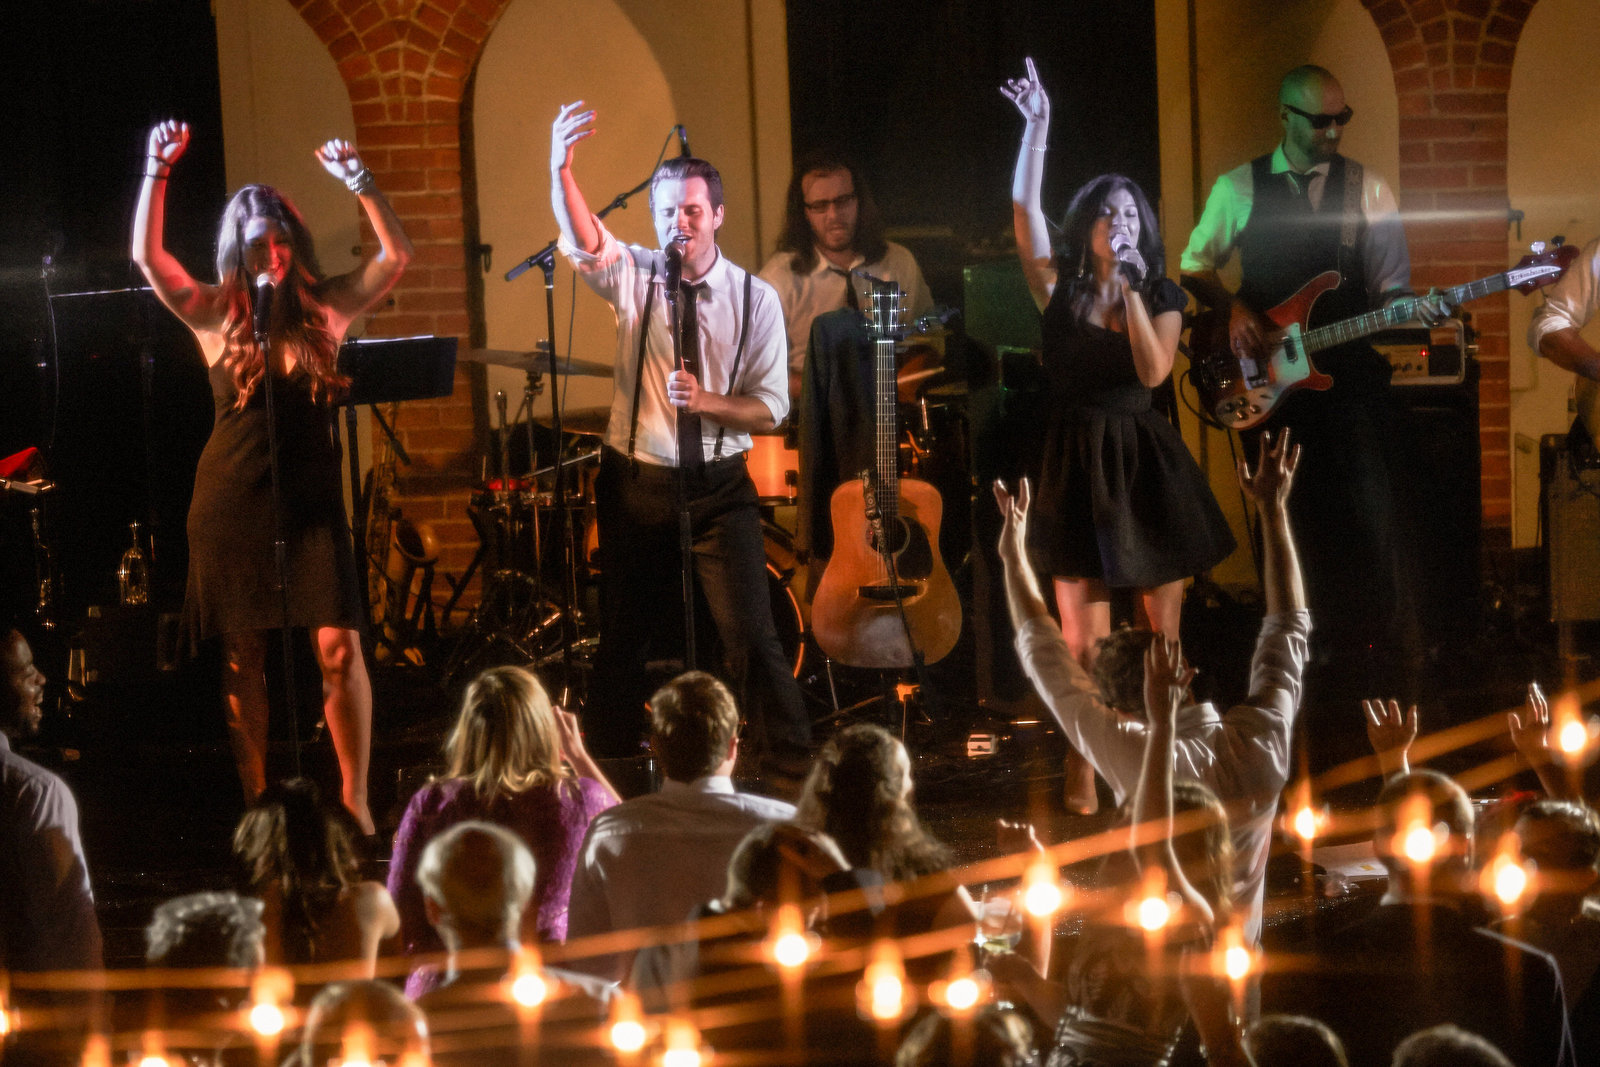 The-Downtown-Band-Cheekwood-Wedding-Reception